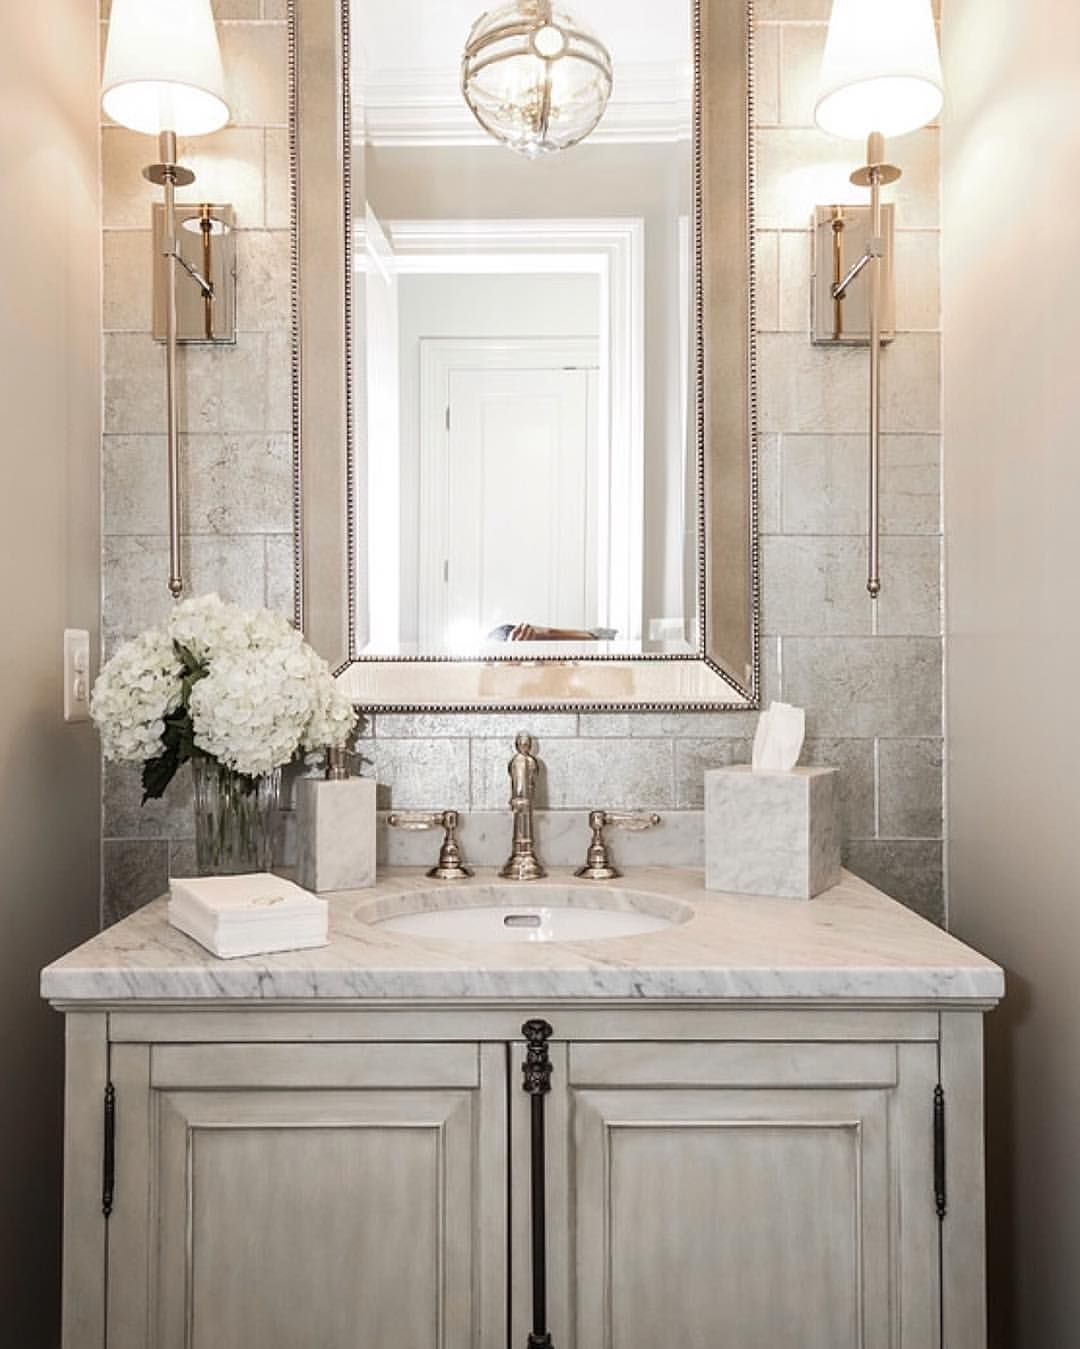 Office Bathroom Decor Such An Elegant Powder Room By Castlwood Custom Builders For